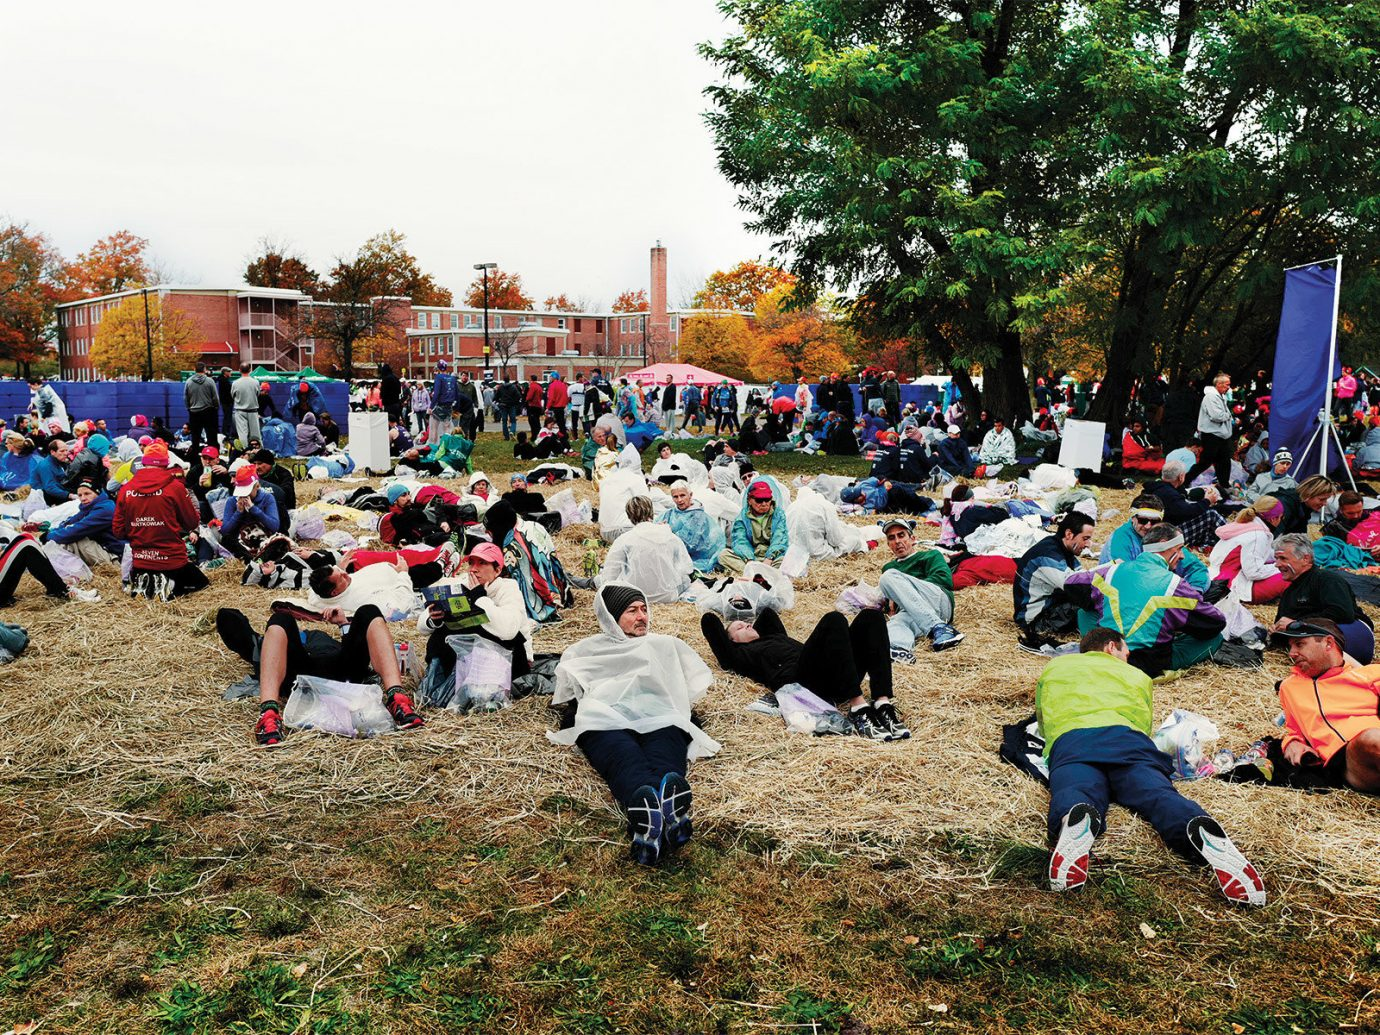 Arts + Culture tree outdoor grass people crowd group community endurance gathered several Playground